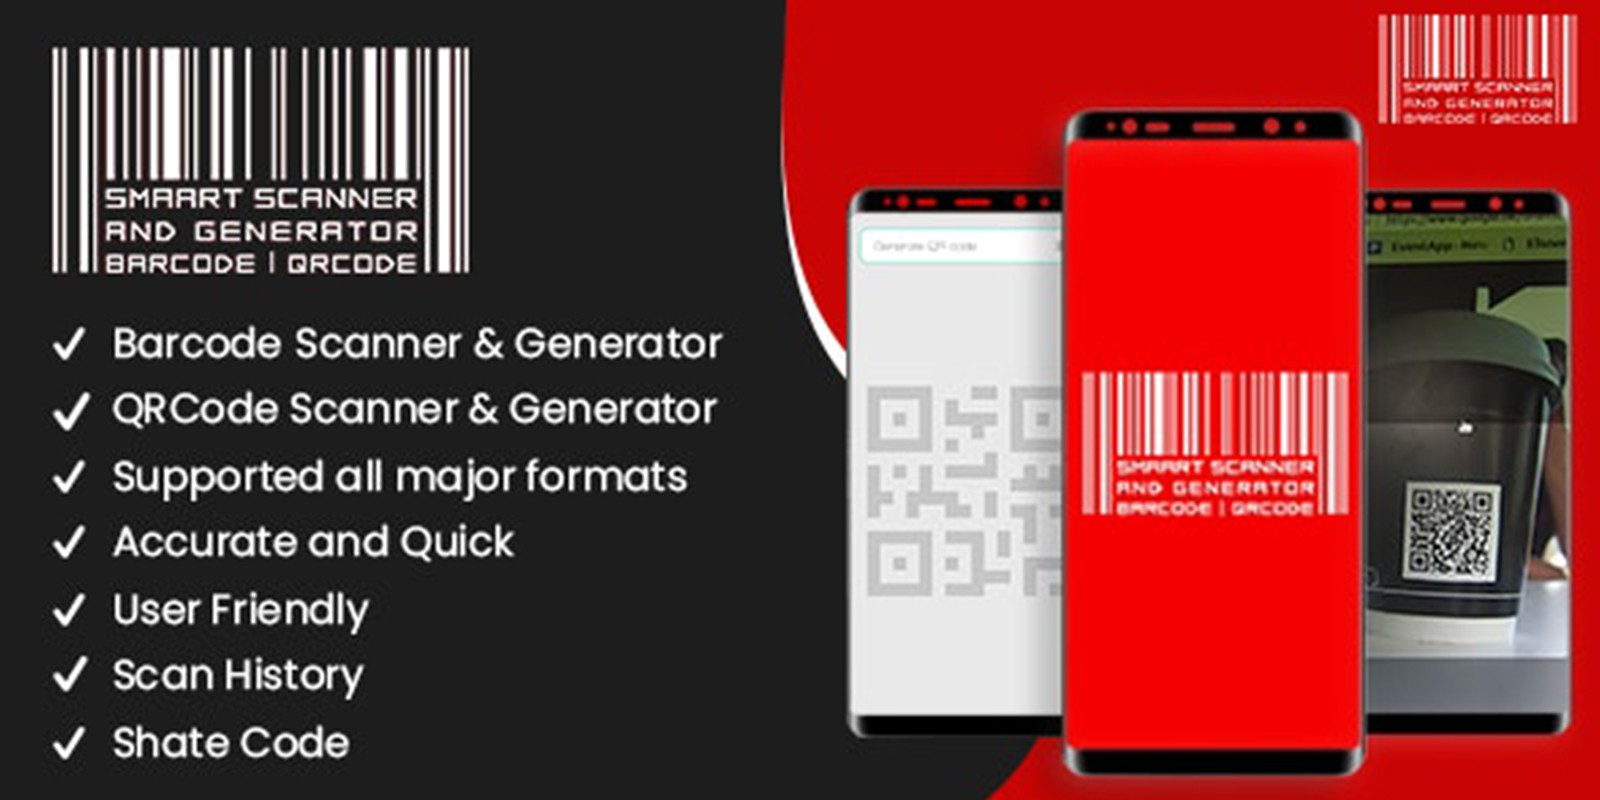 Smart Scanner and Generator Barcode Android